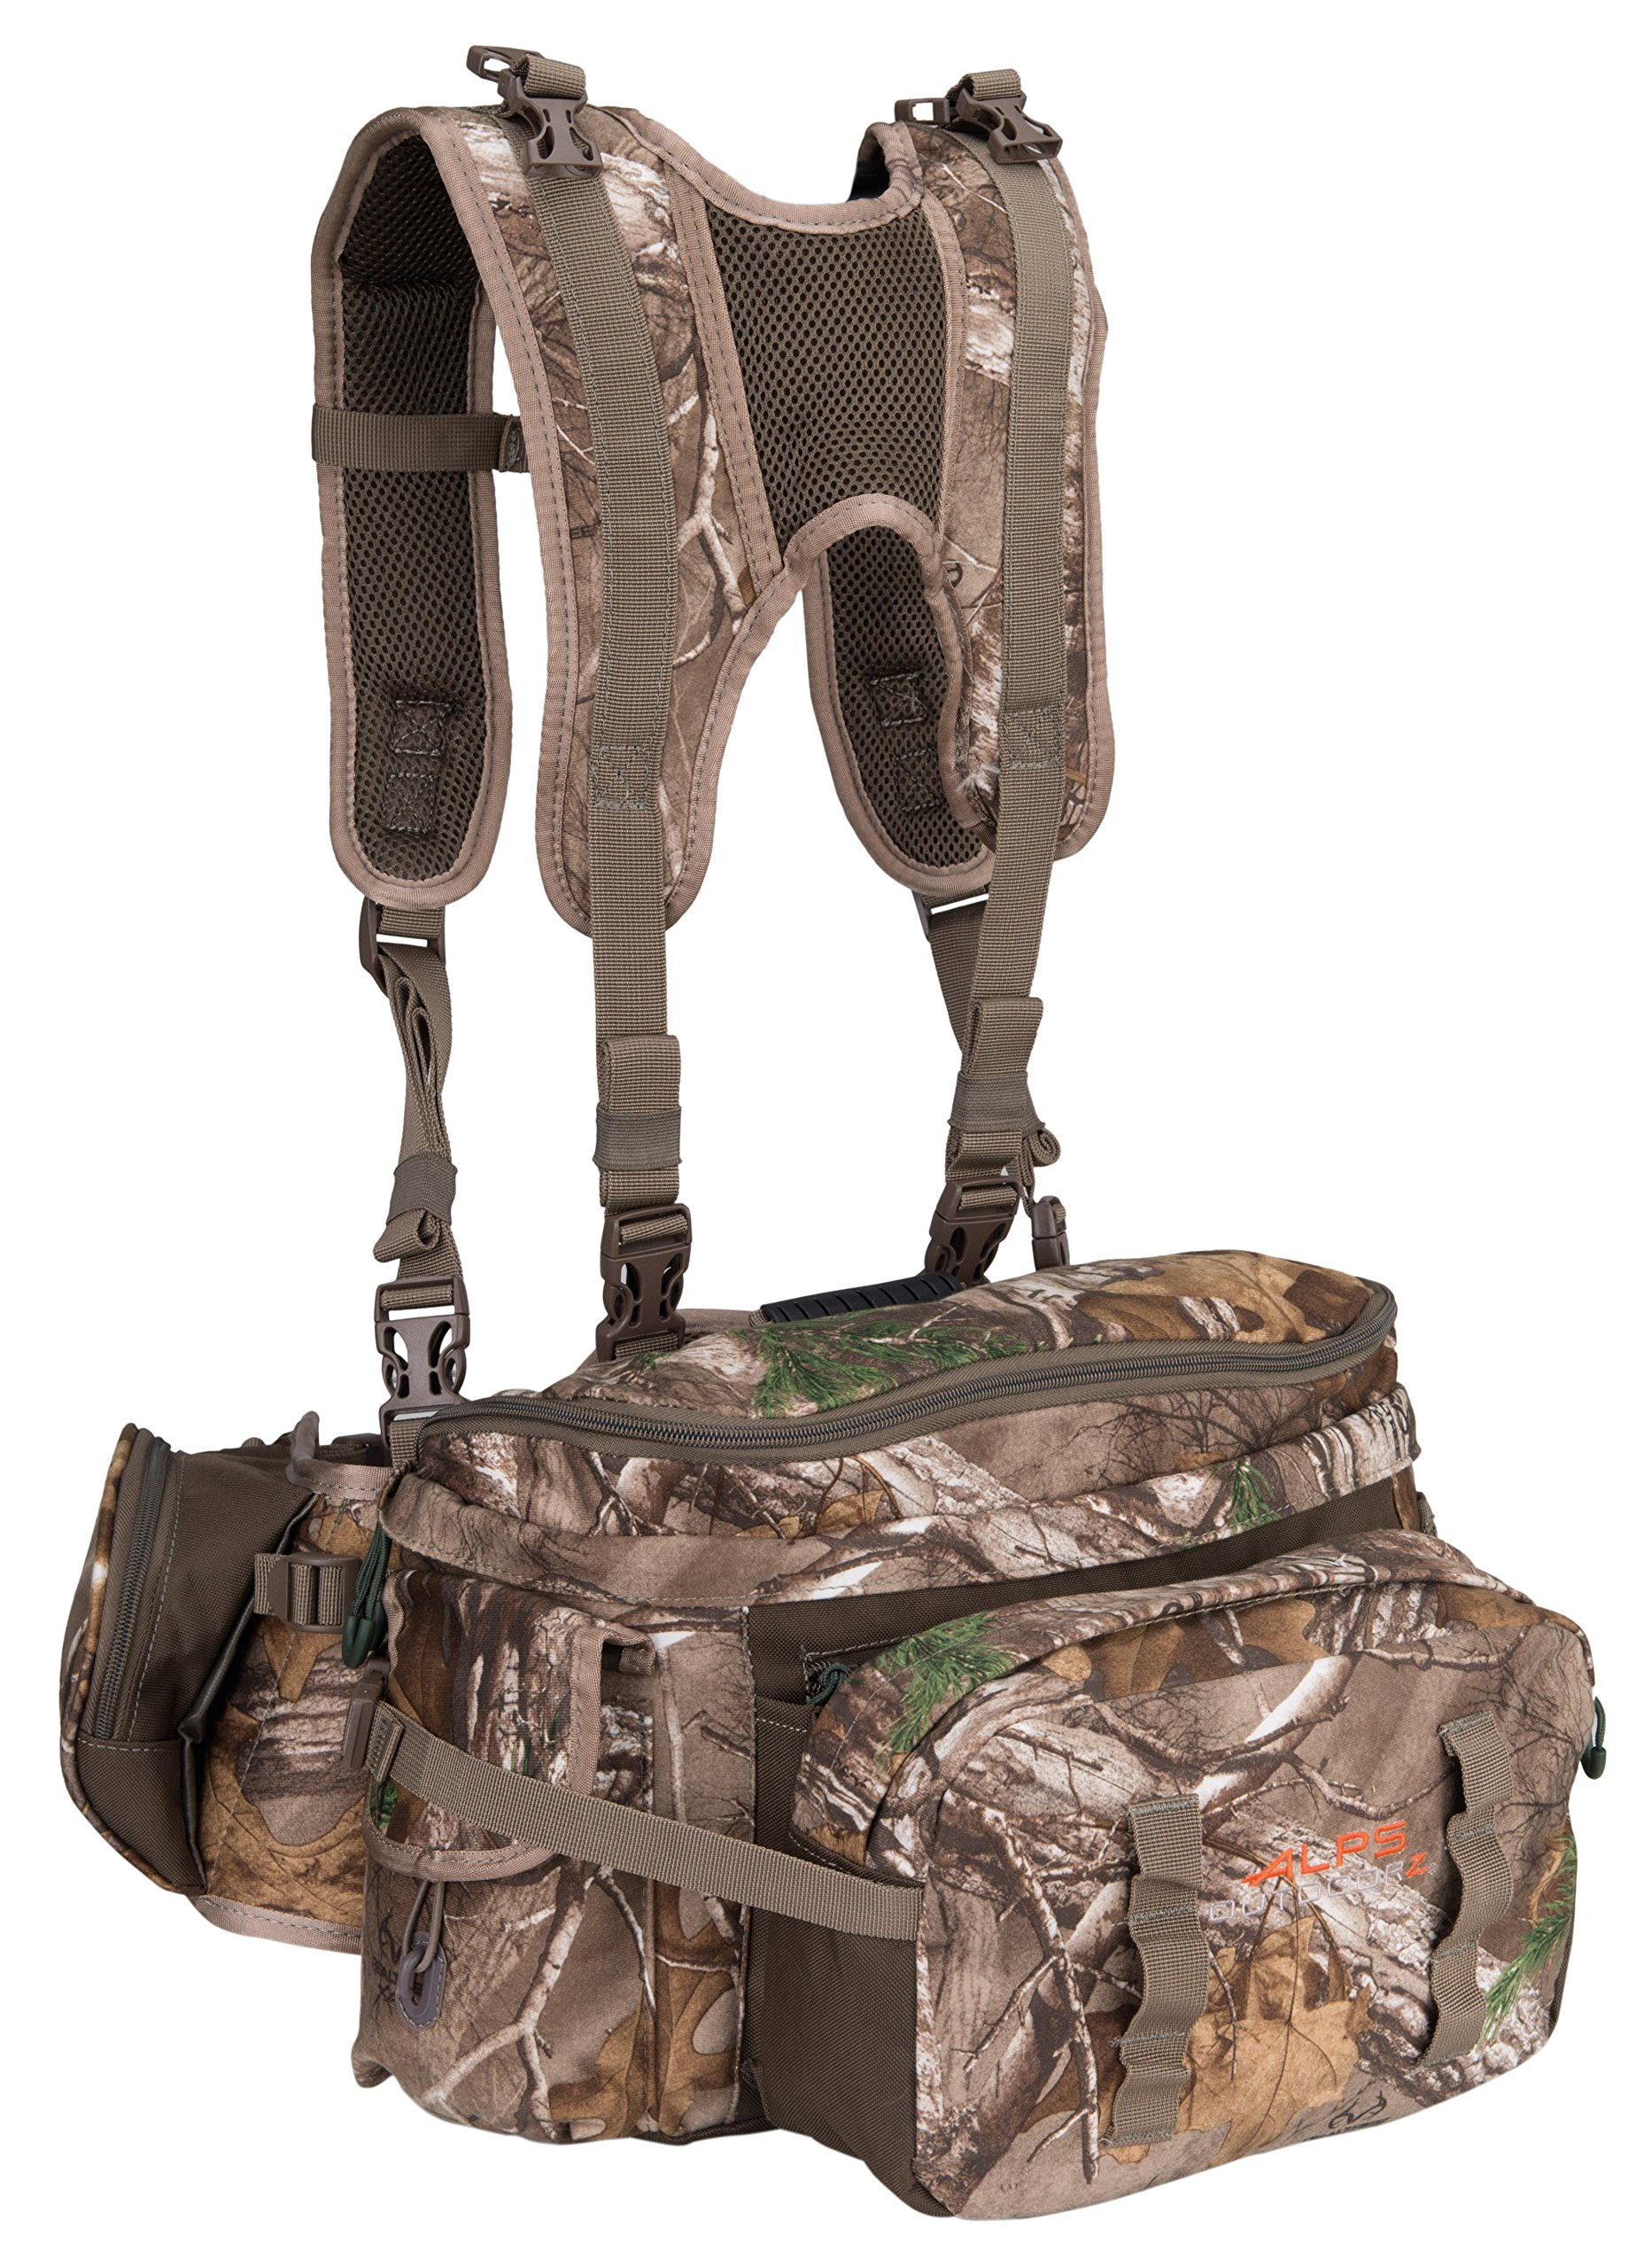 ALPS OutdoorZ Pathfinder Hunting Pack mini review